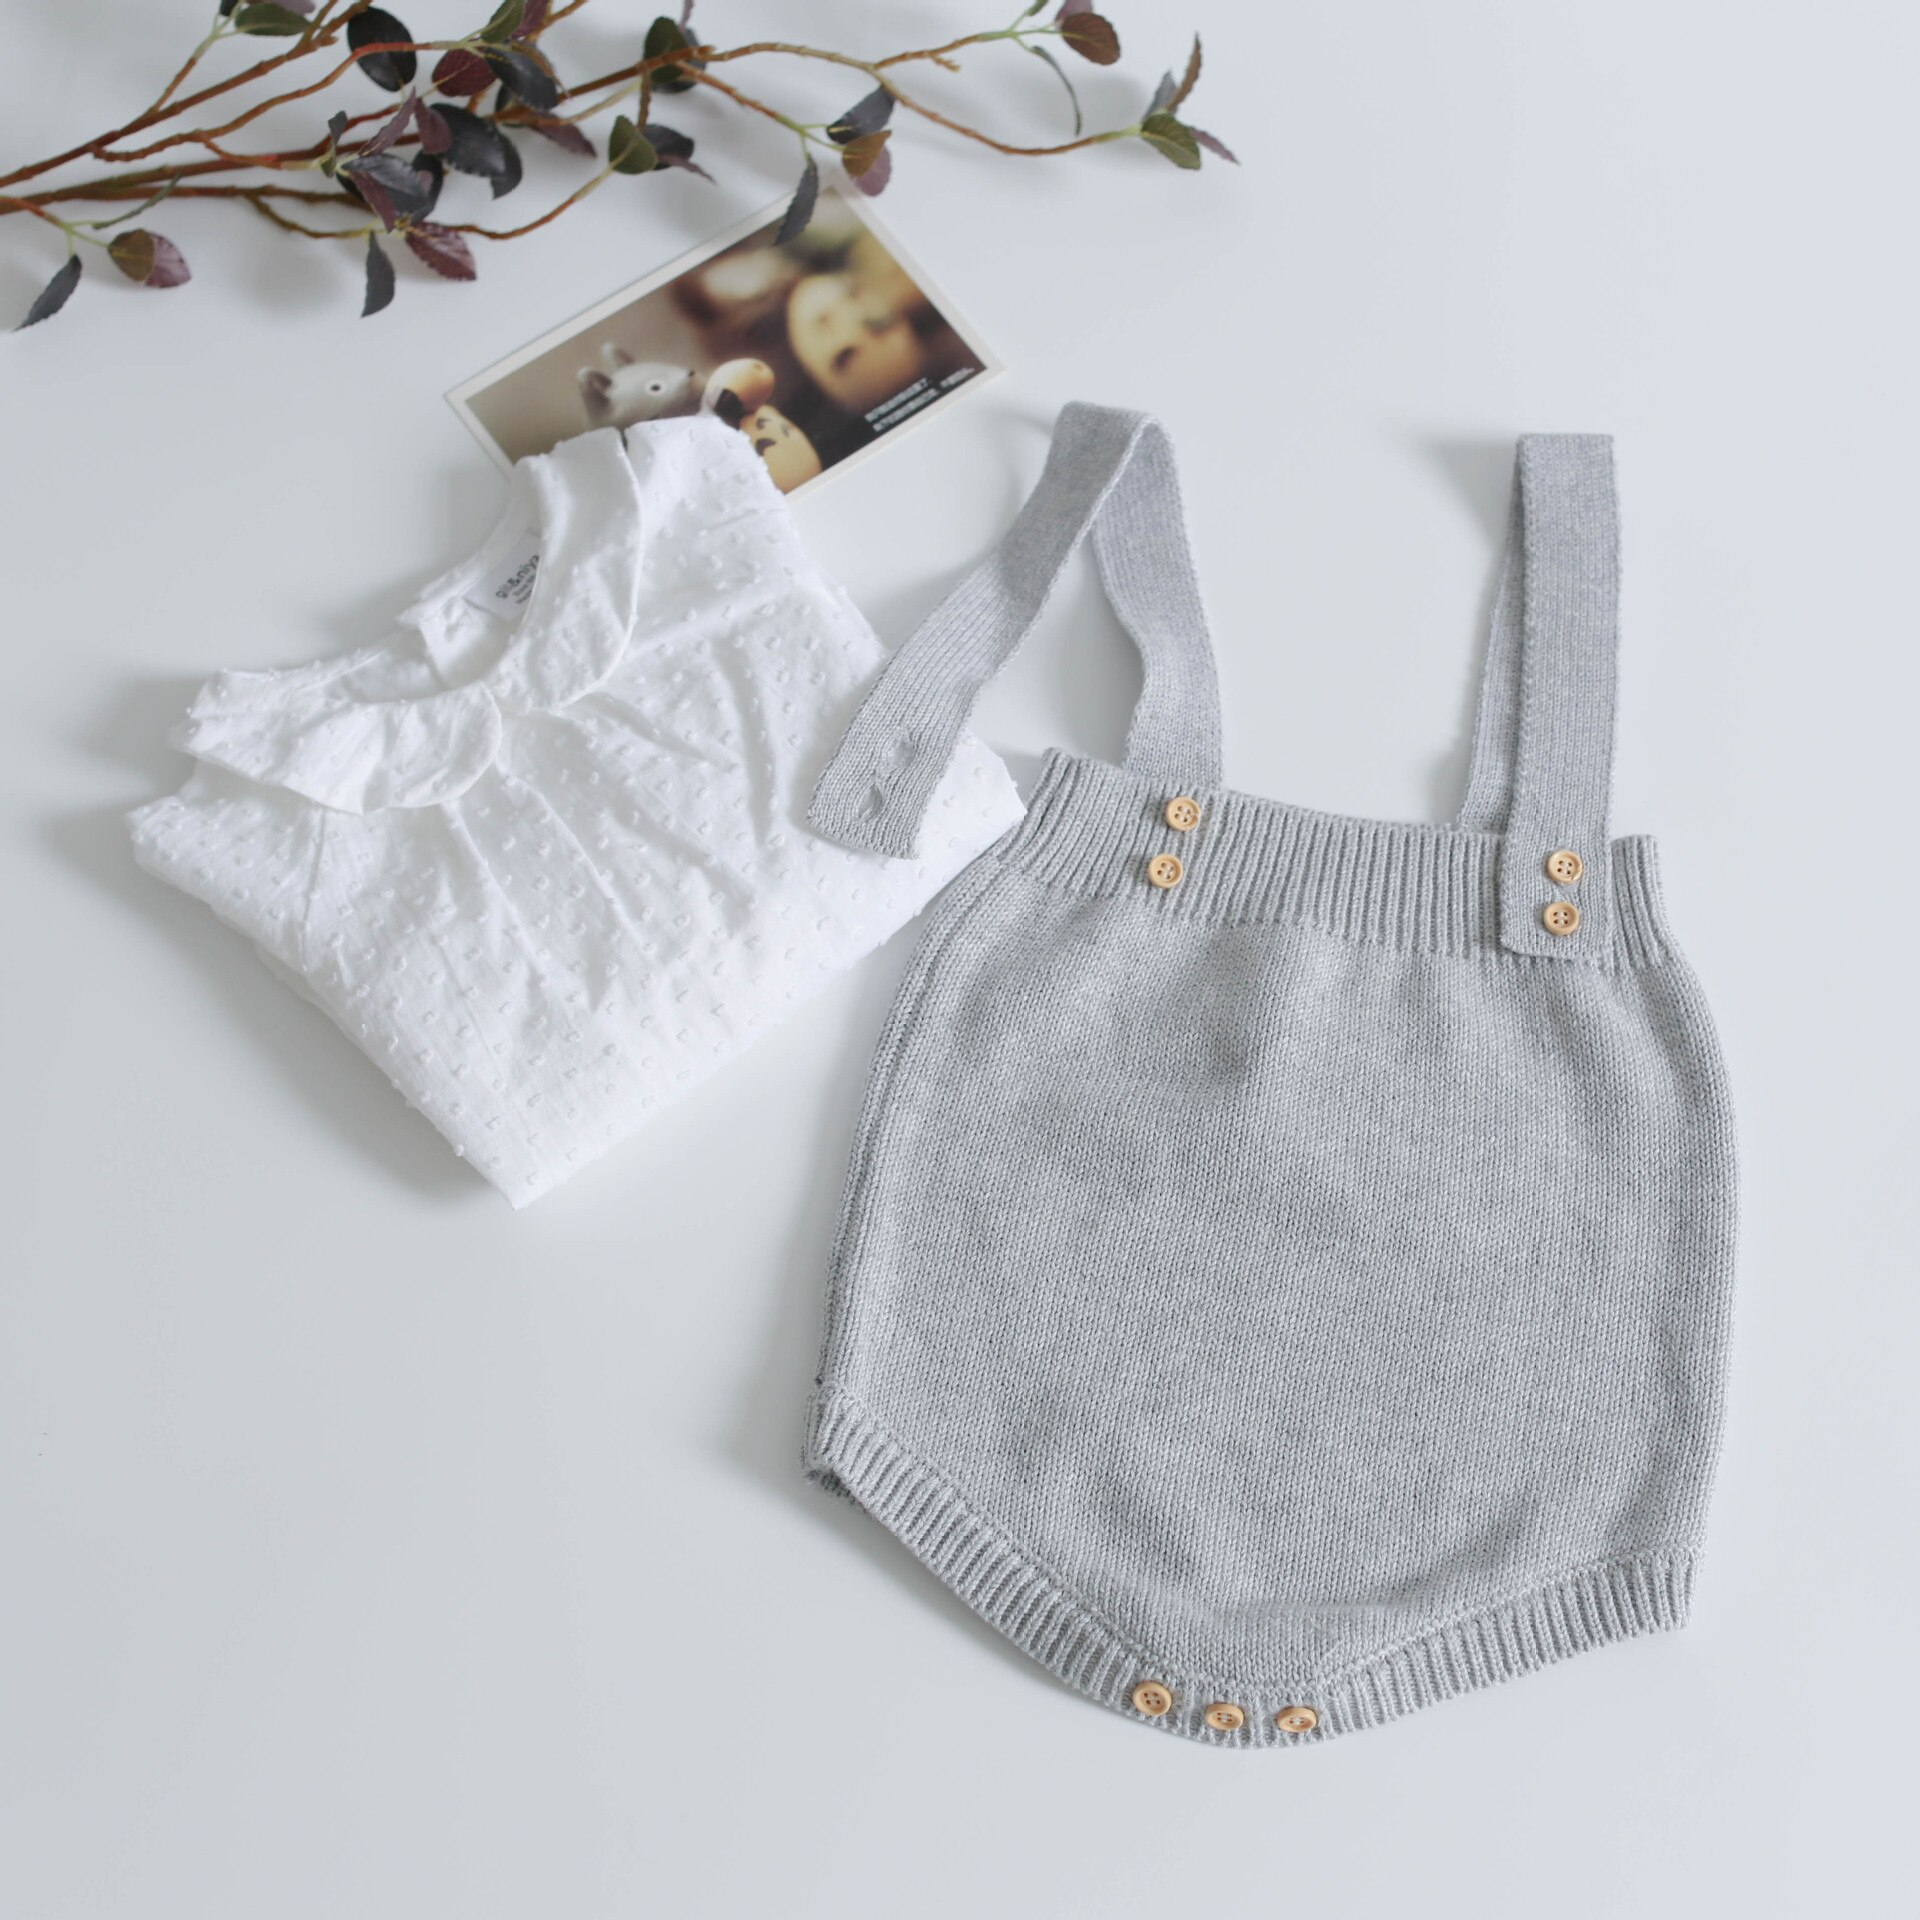 Baby Knitted Rompers Cute Overalls Newborn Baby Girls Boys Clothes Infant Baby Girl Boy Sleeveless Romper Jumpsuit 0-24months